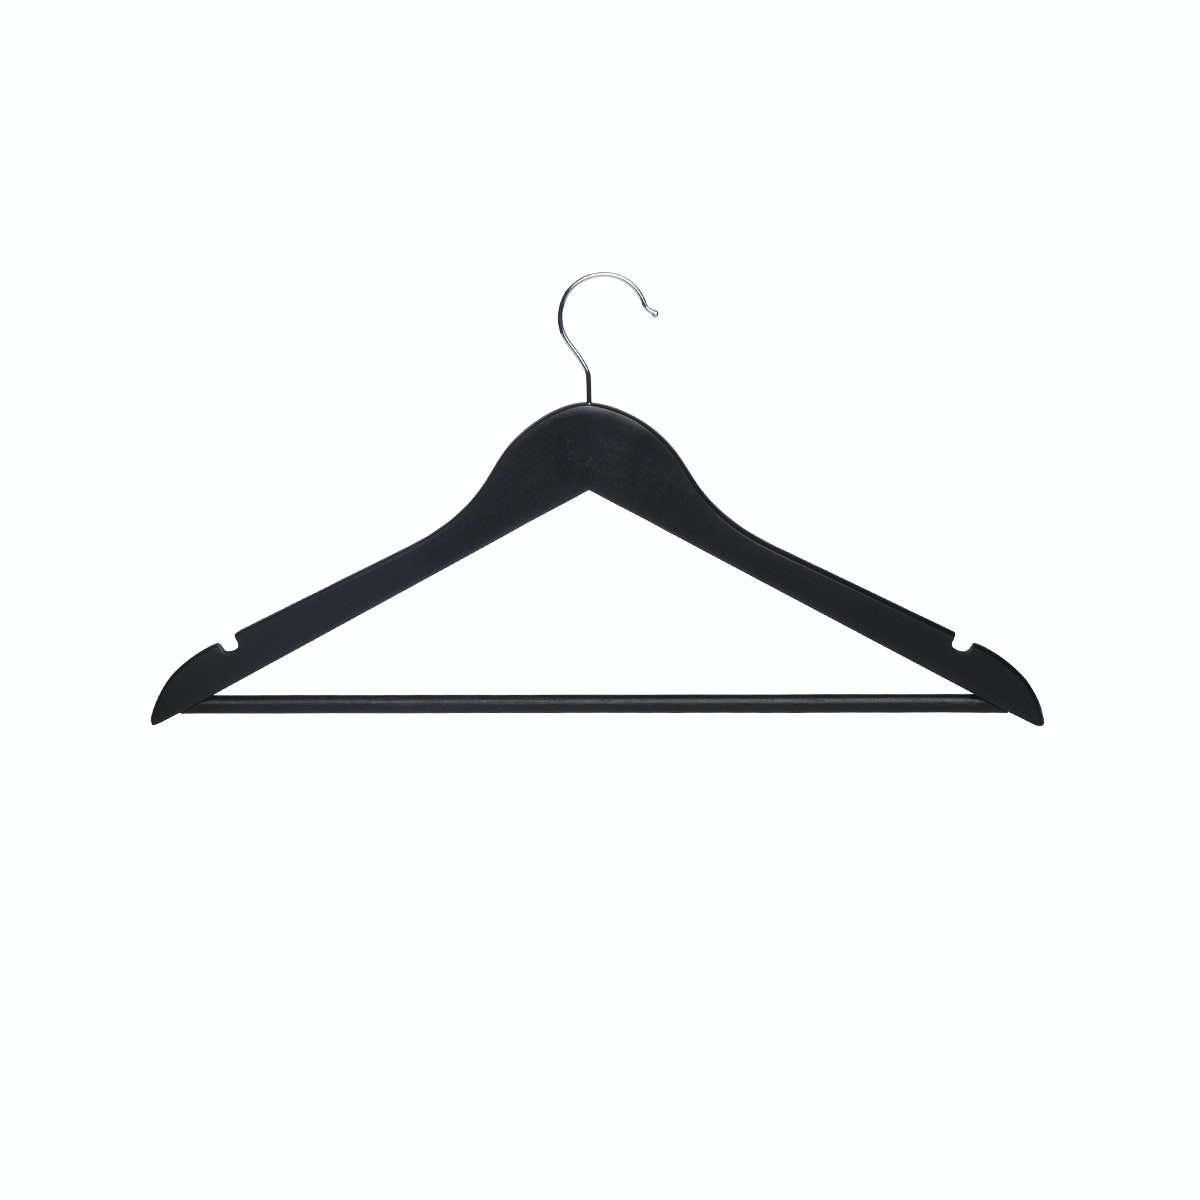 Informa Wood Cloth Hangers (8) Black